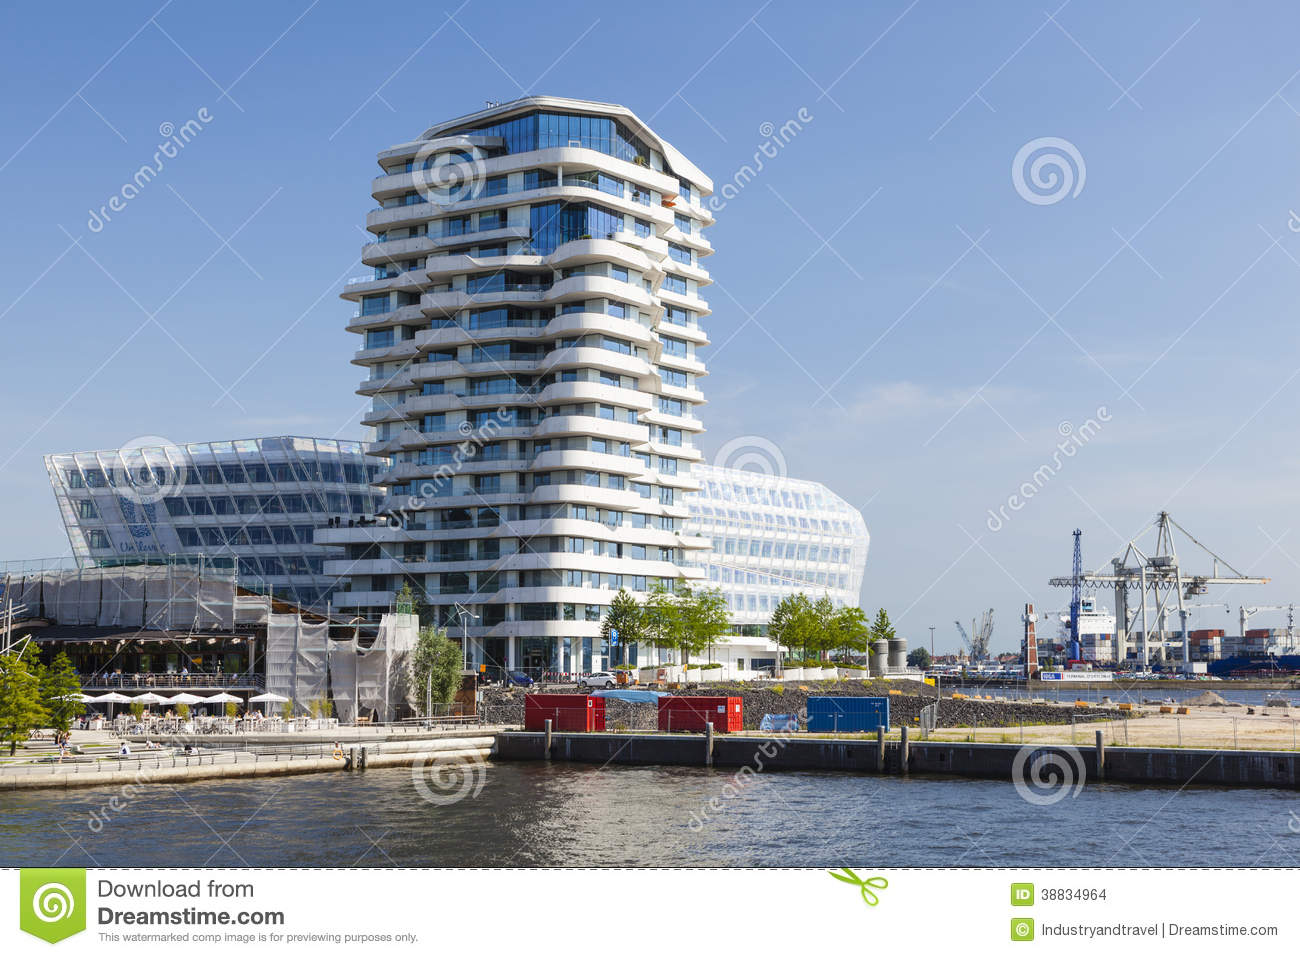 Marco Polo Tower Marco Polo Tower In Hamburg, Germany, Editorial Editorial Stock Image - Image Of Destination, Sunlight: 38834964